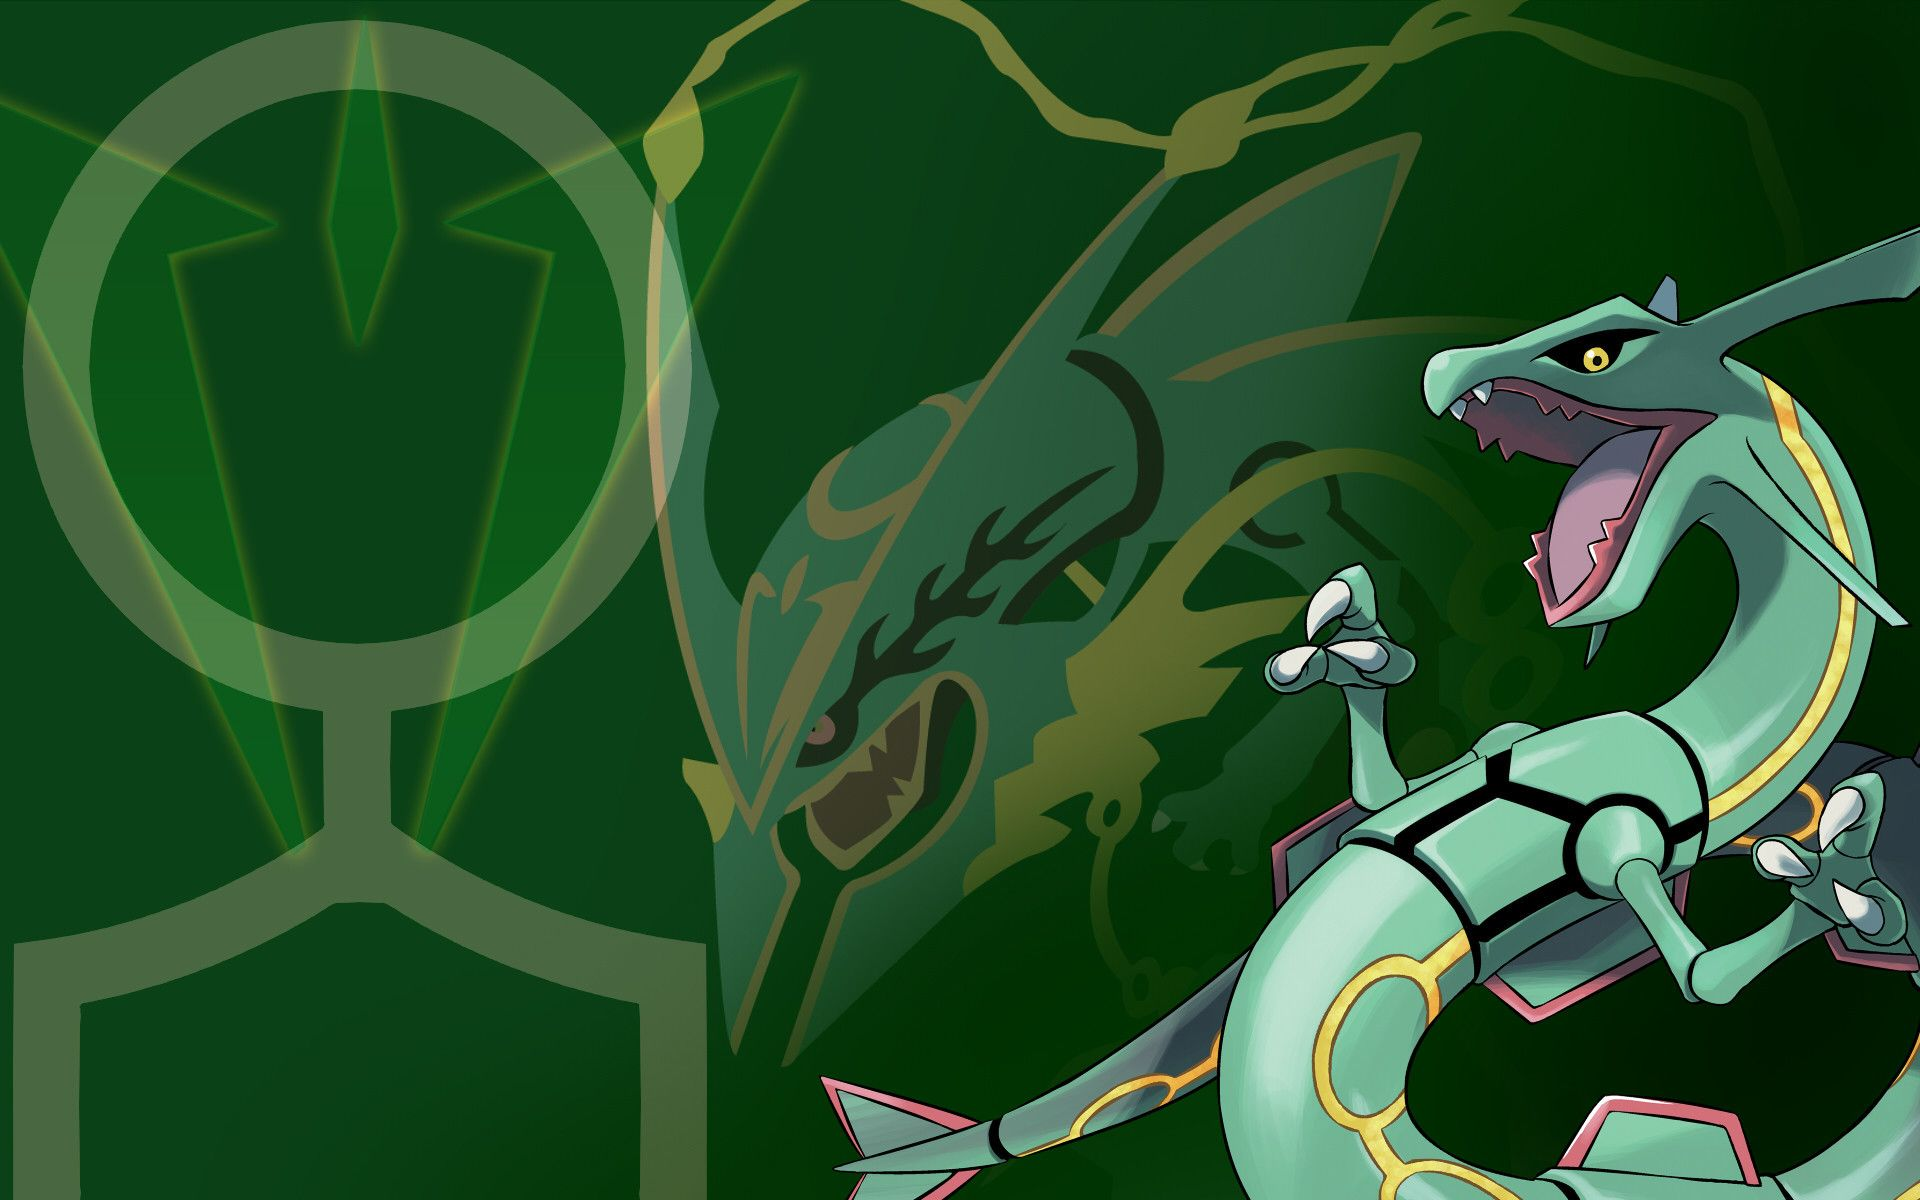 72 Shiny Rayquaza Wallpapers On Wallpaperplay Rayquaza Wallpaper Pokemon Backgrounds Pokemon Rayquaza